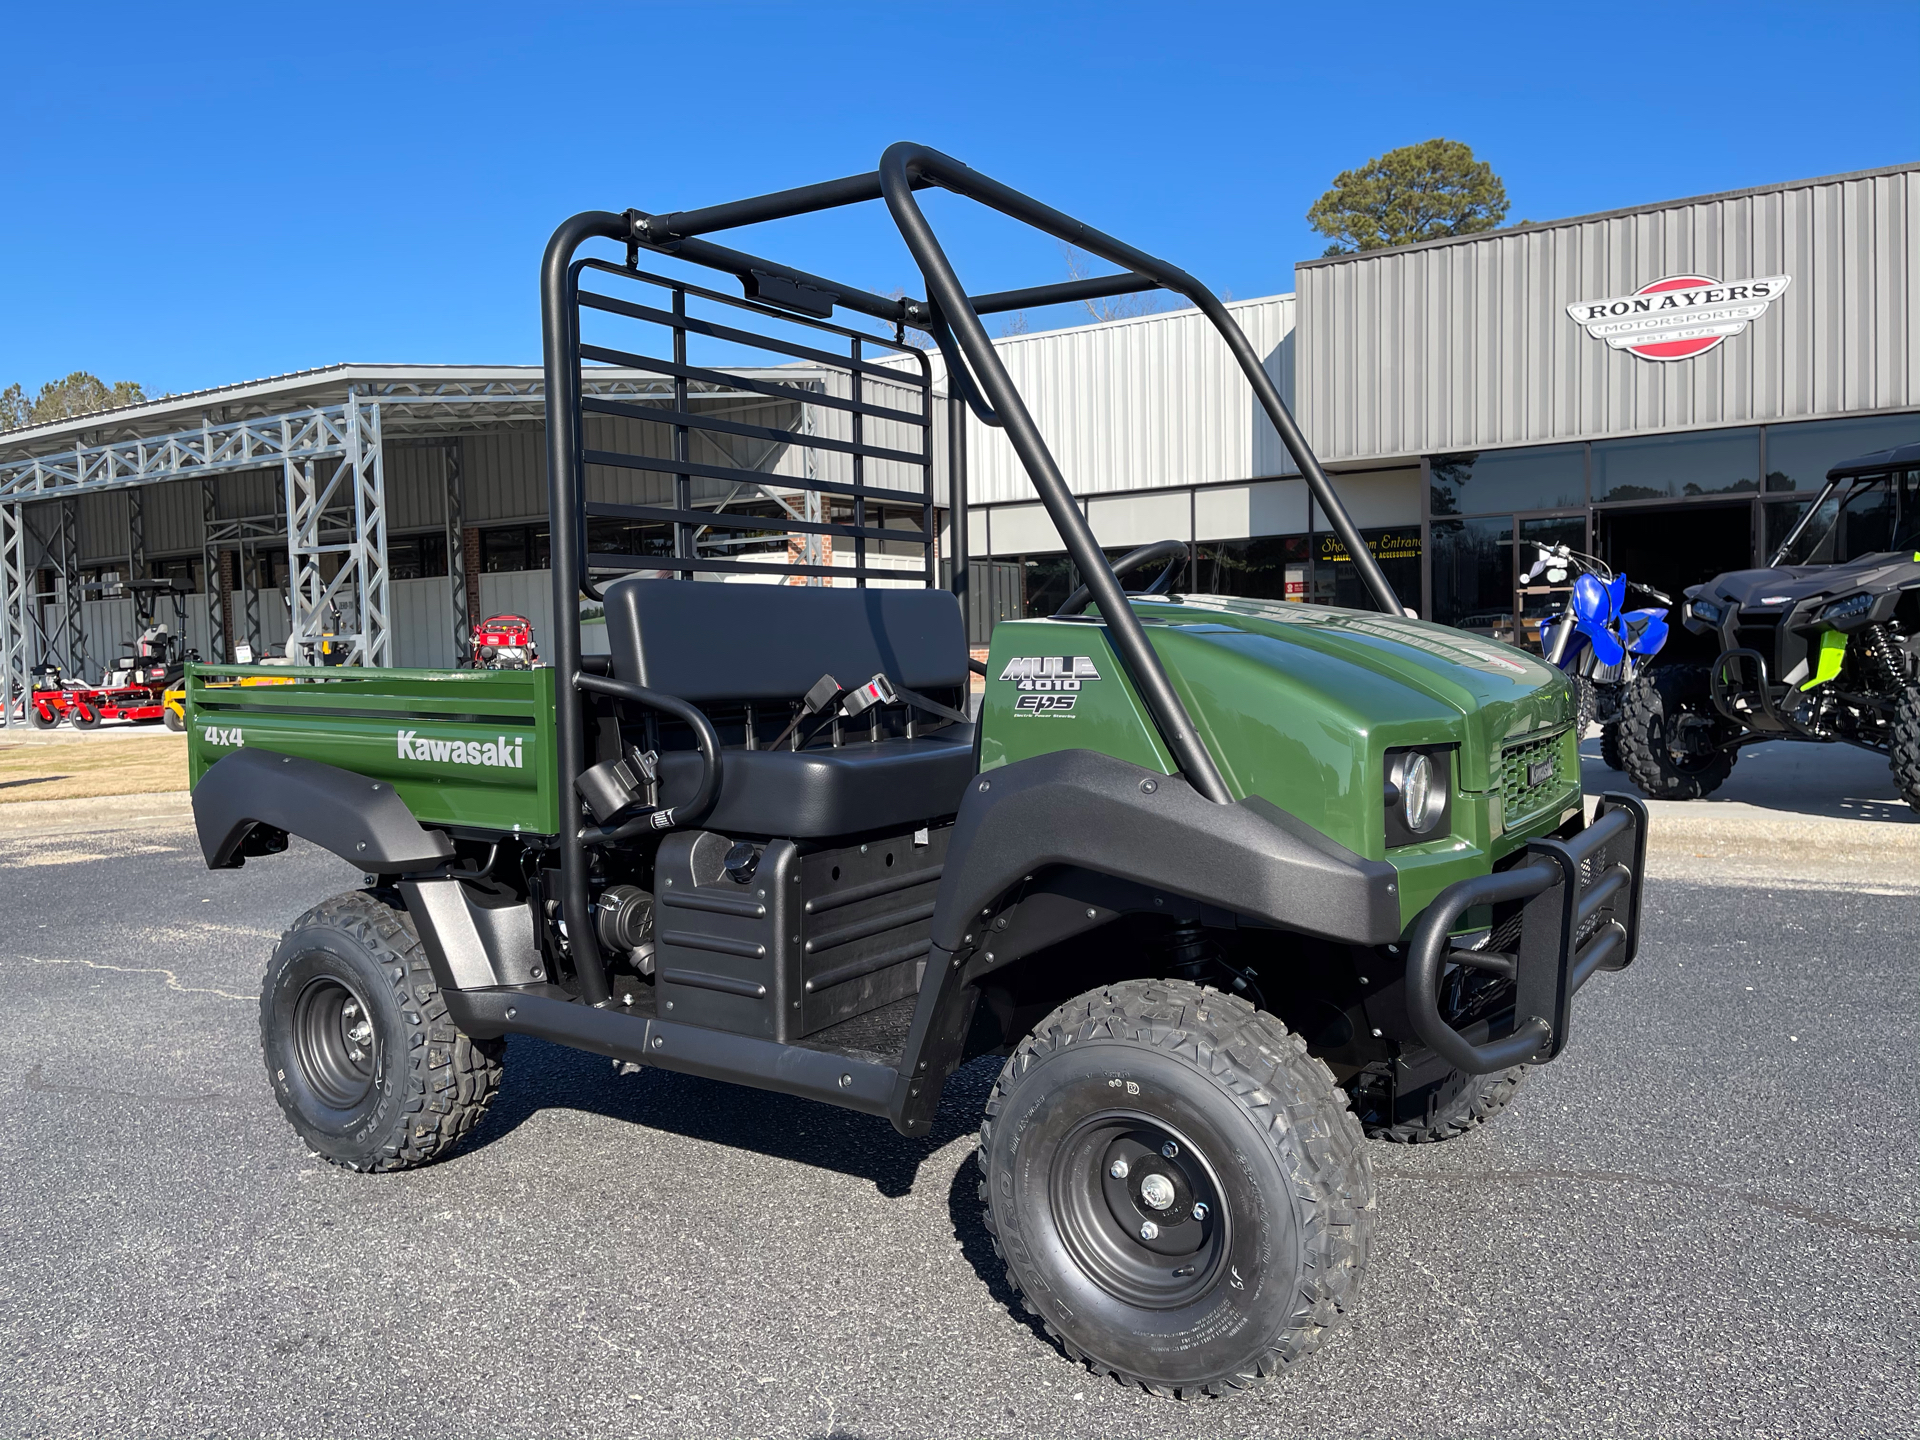 2021 Kawasaki Mule 4010 4x4 in Greenville, North Carolina - Photo 2